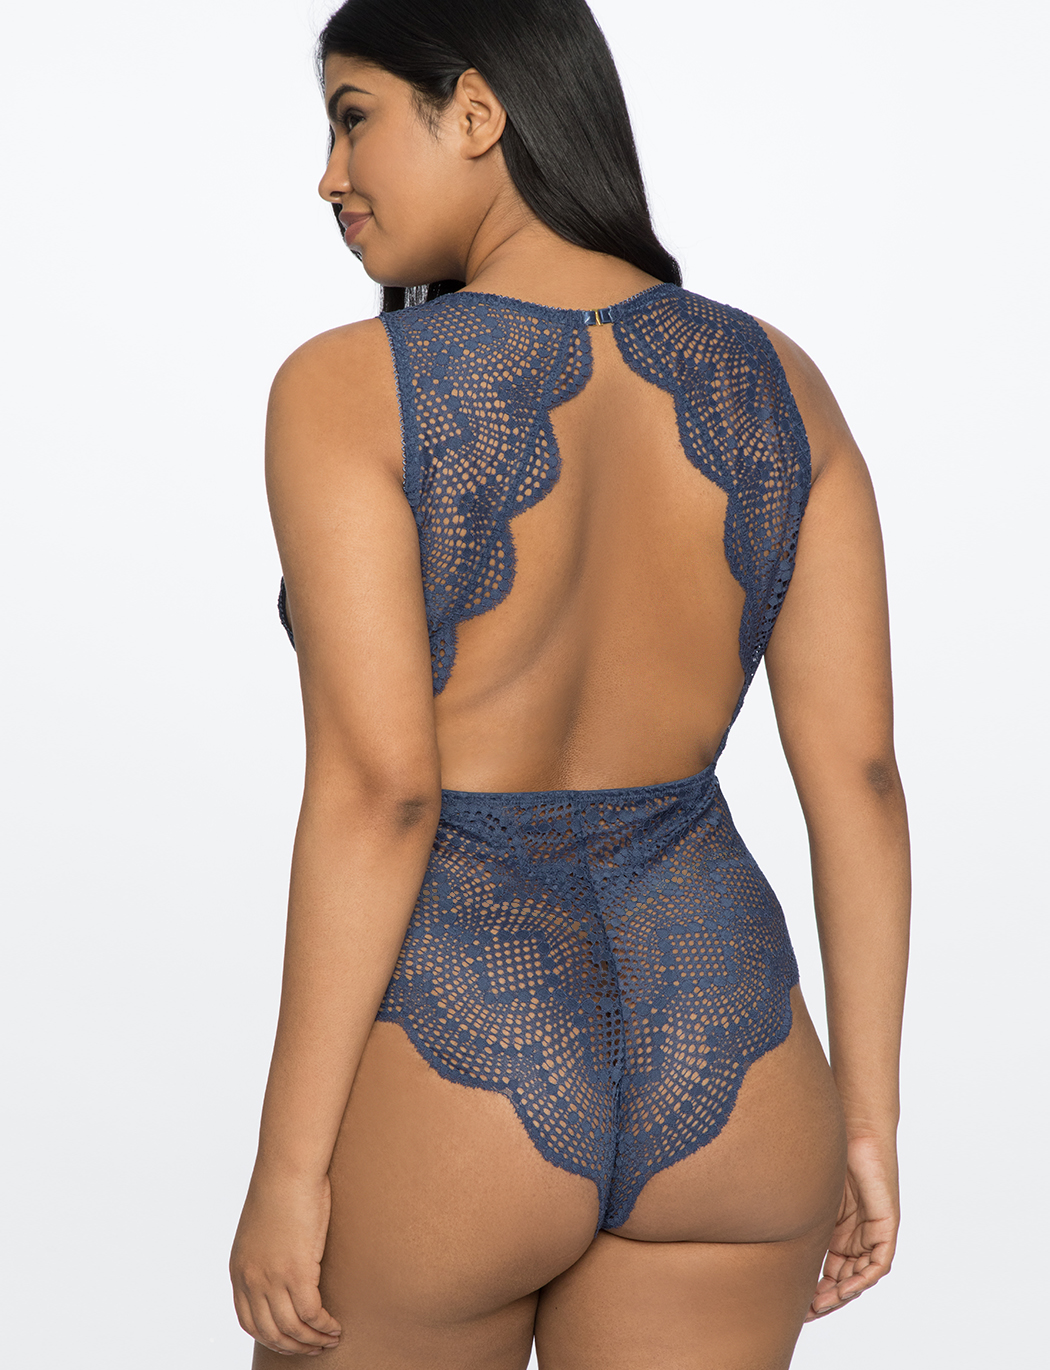 Lace Bodysuit with Plunging Neckline